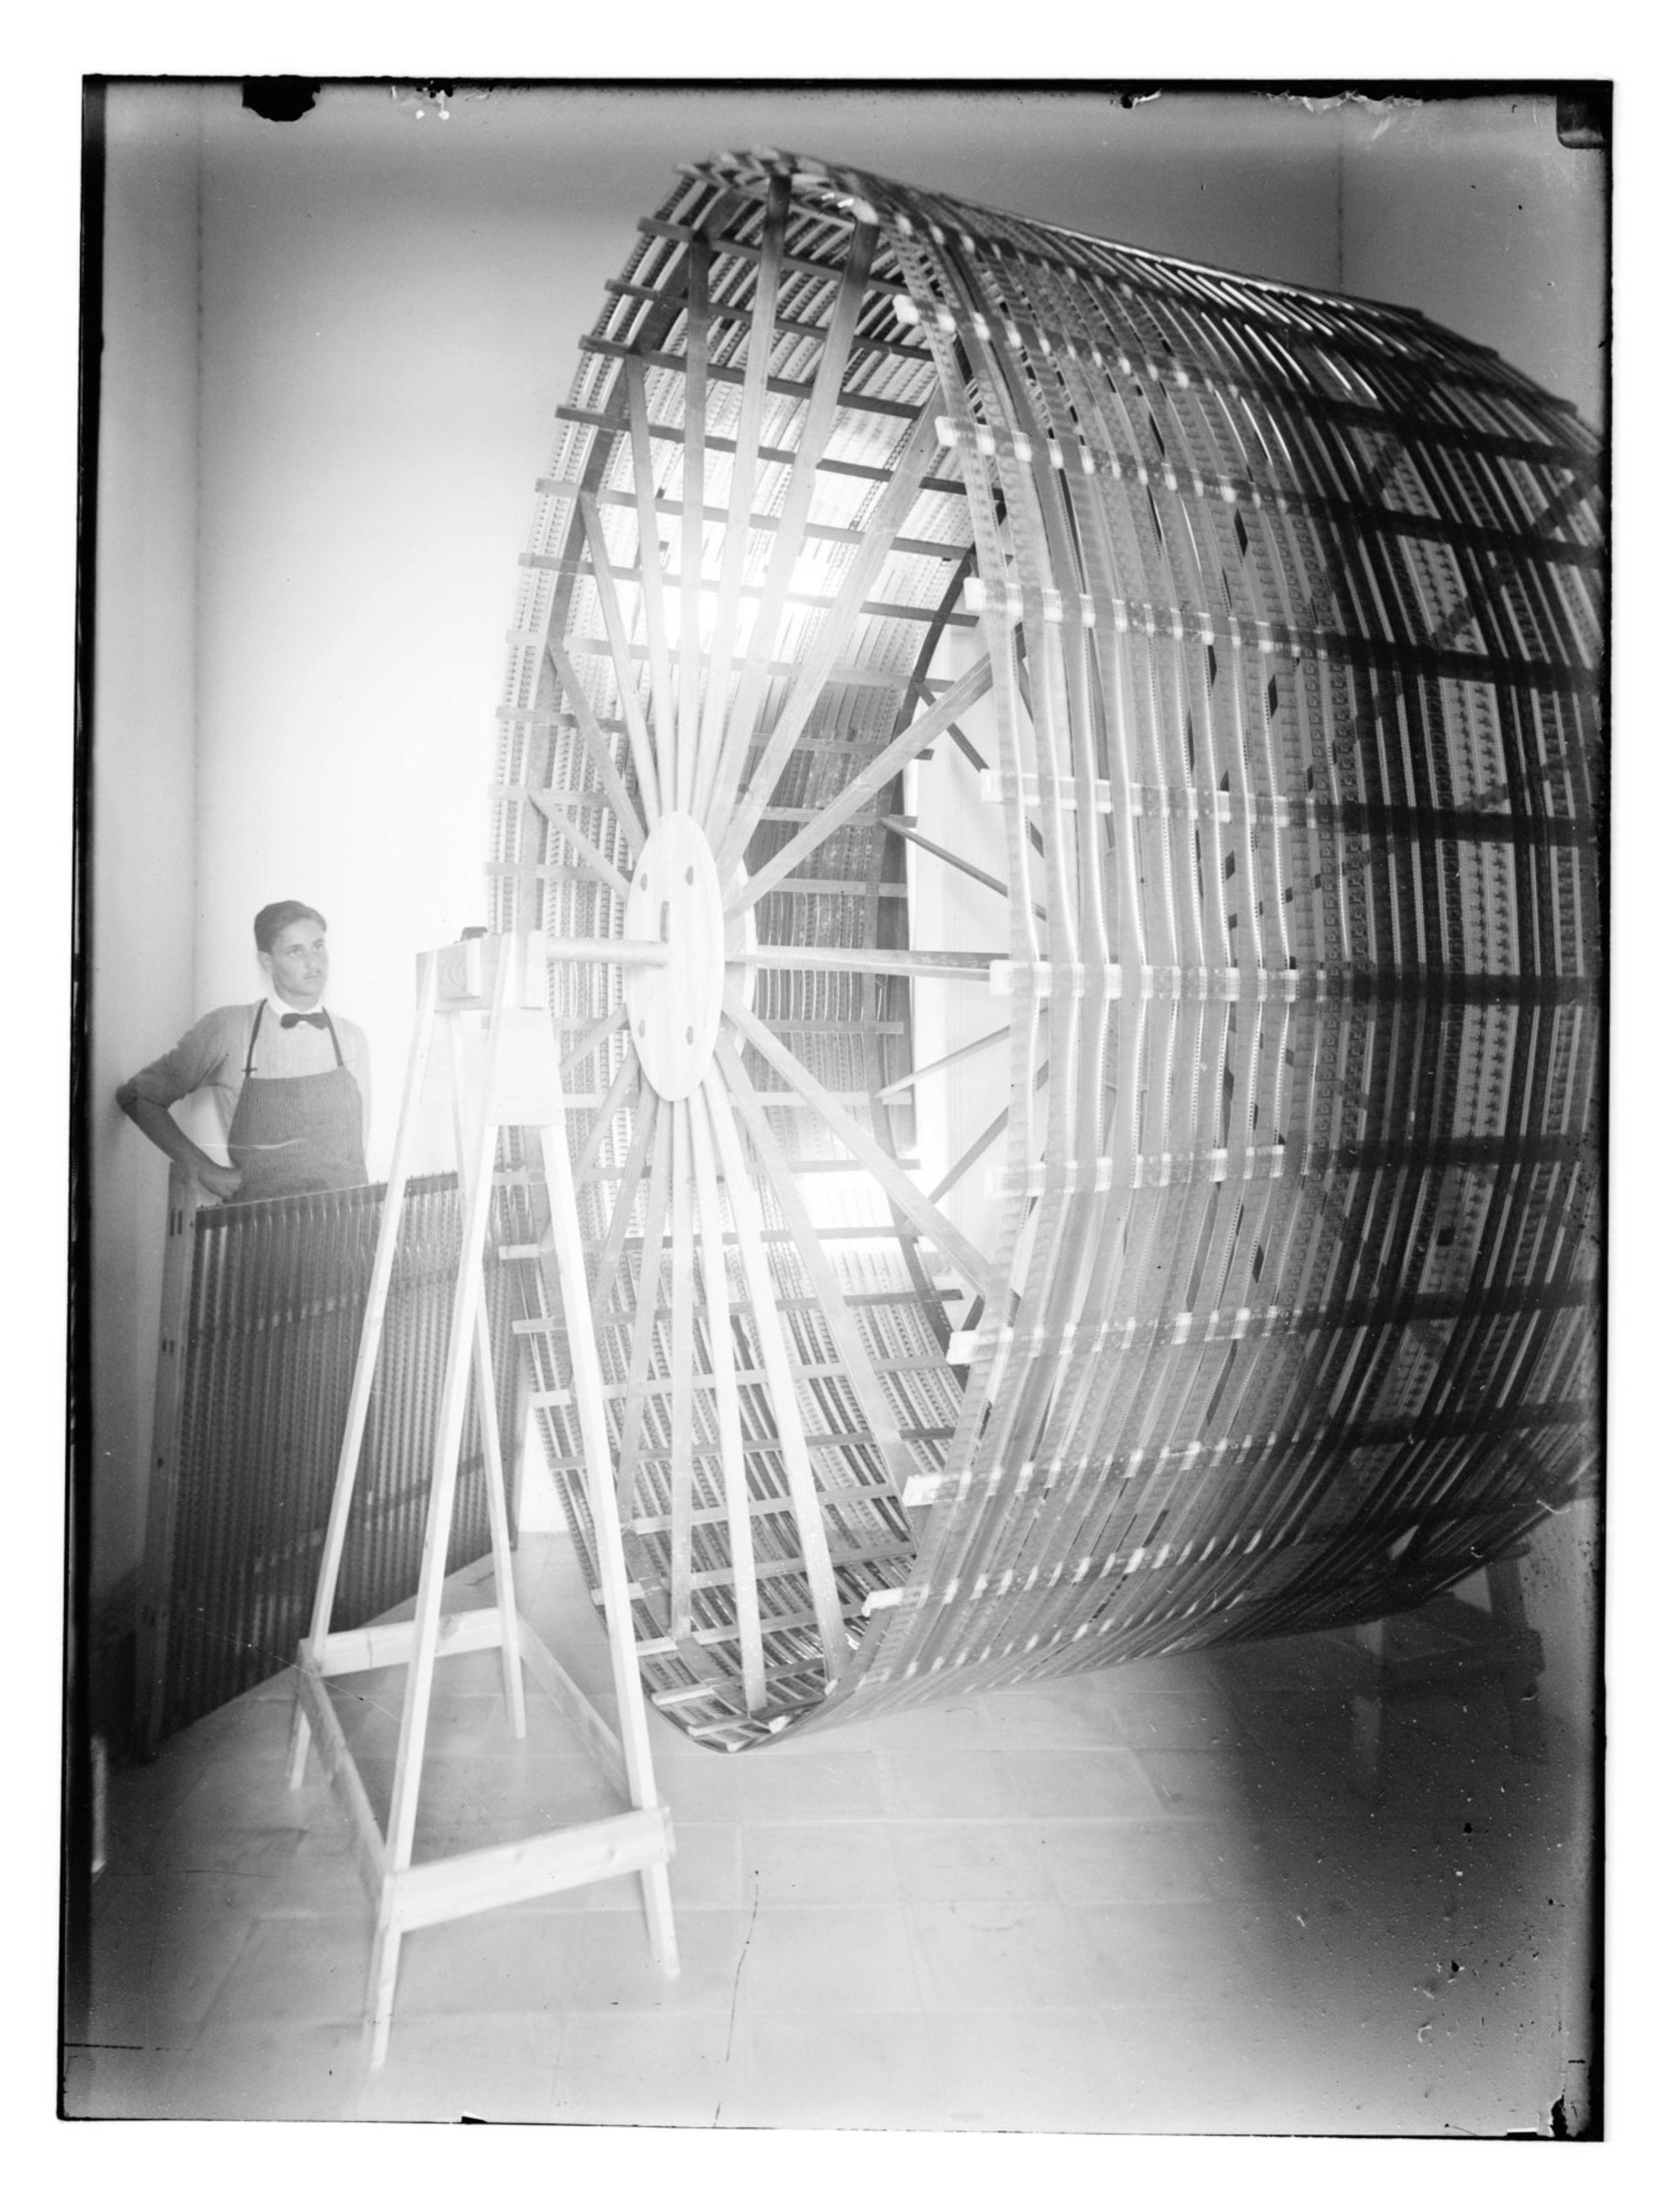 Jamil Albina with a film dryer at the American Colony, Jerusalem, 1920-1930.